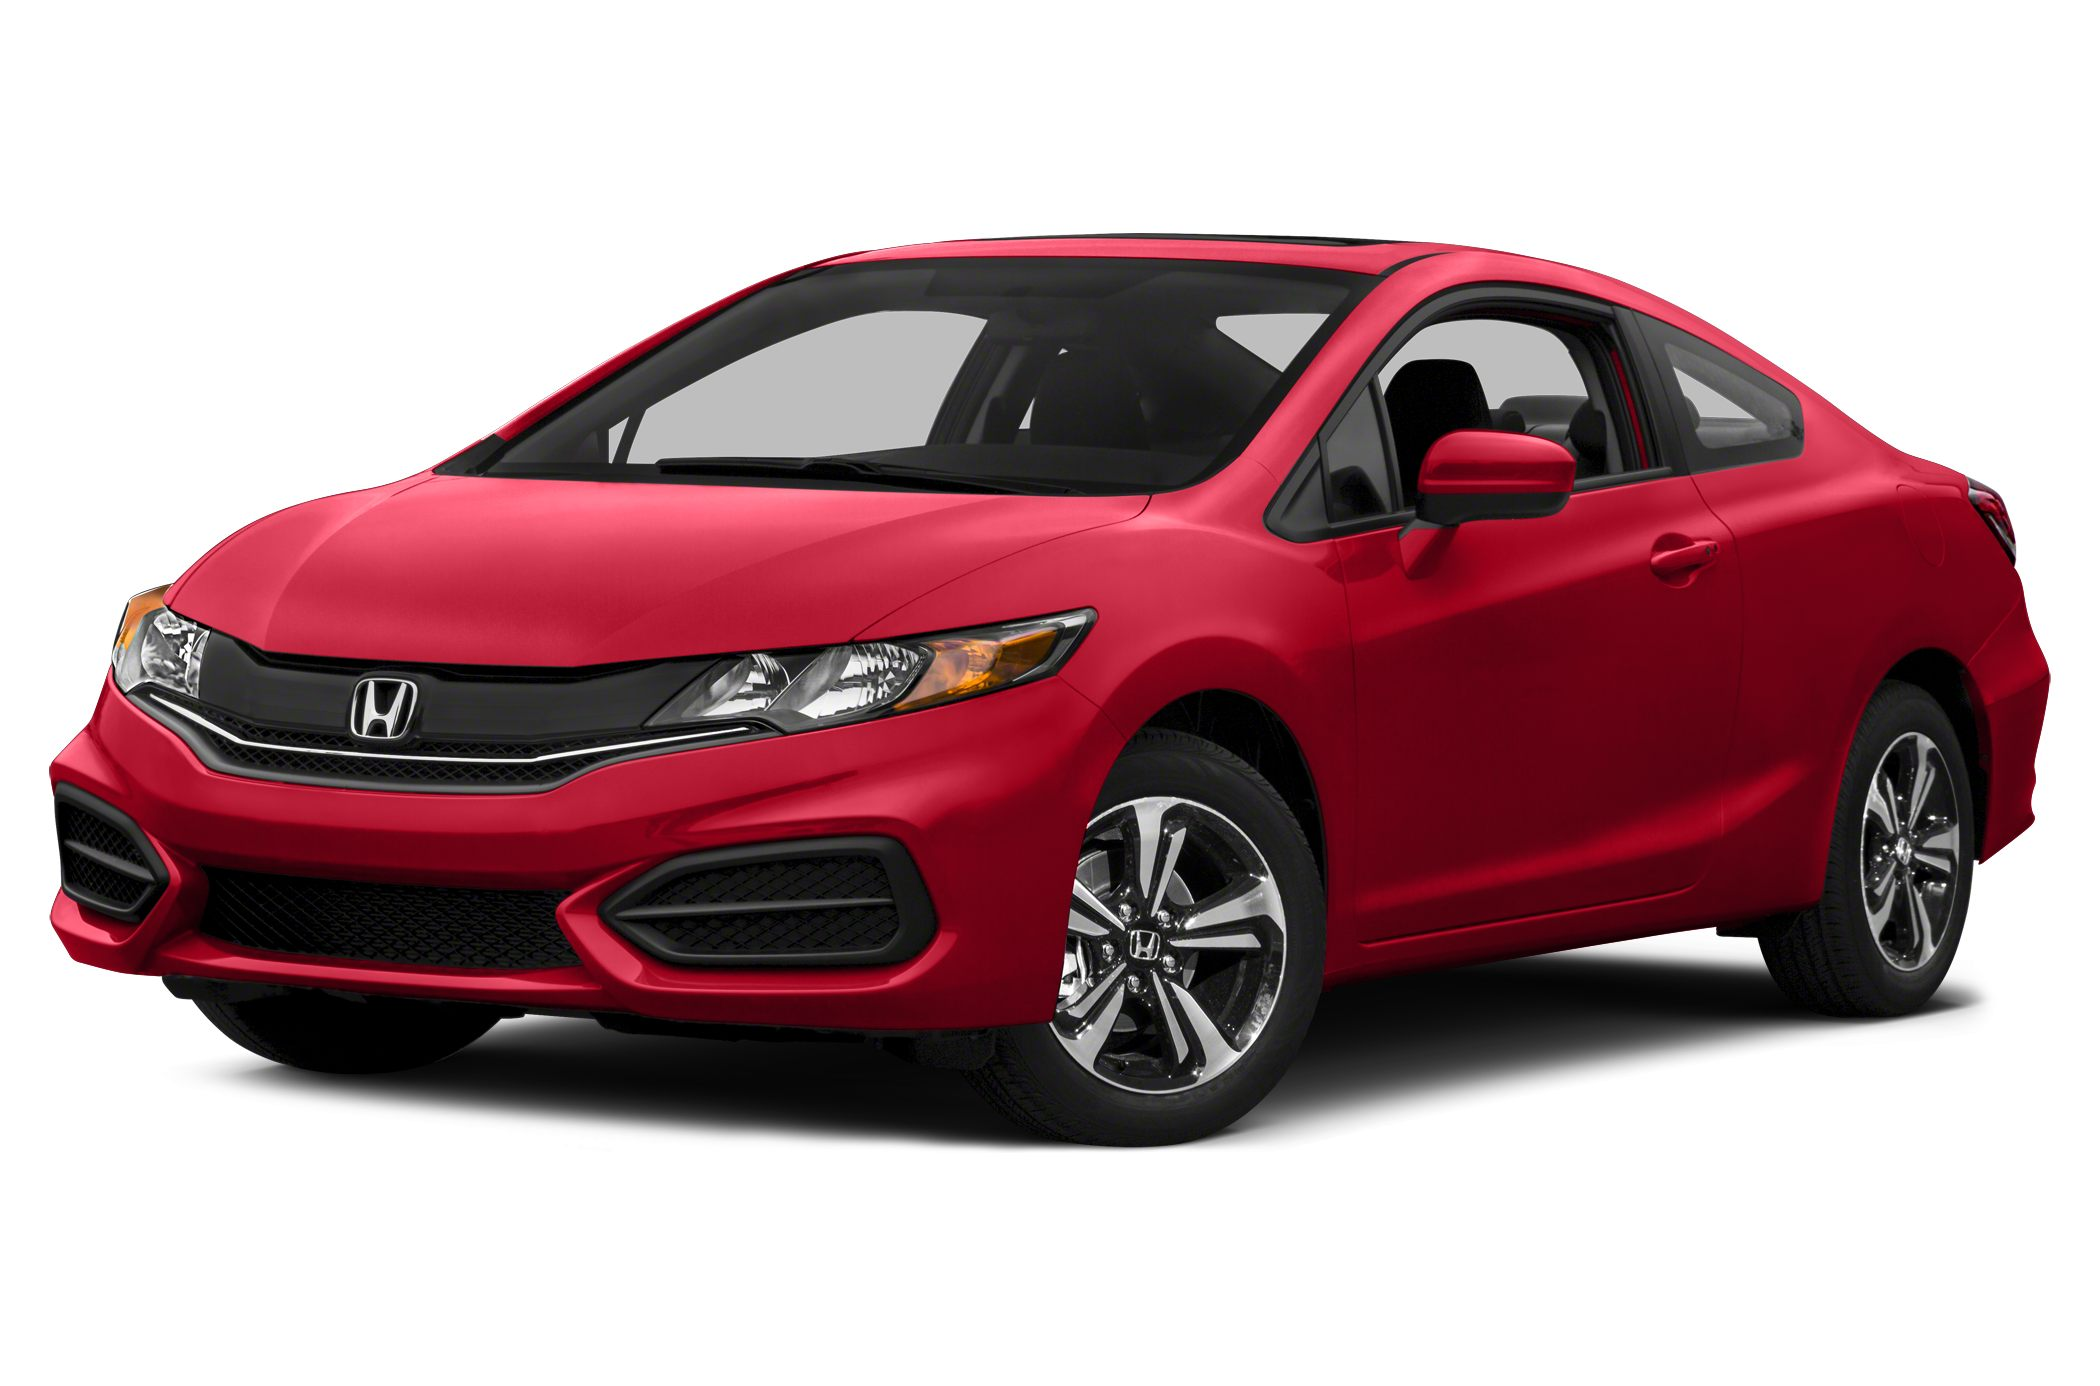 2015 Honda Civic EX Sedan for sale in Florida City for $22,010 with 7 miles.